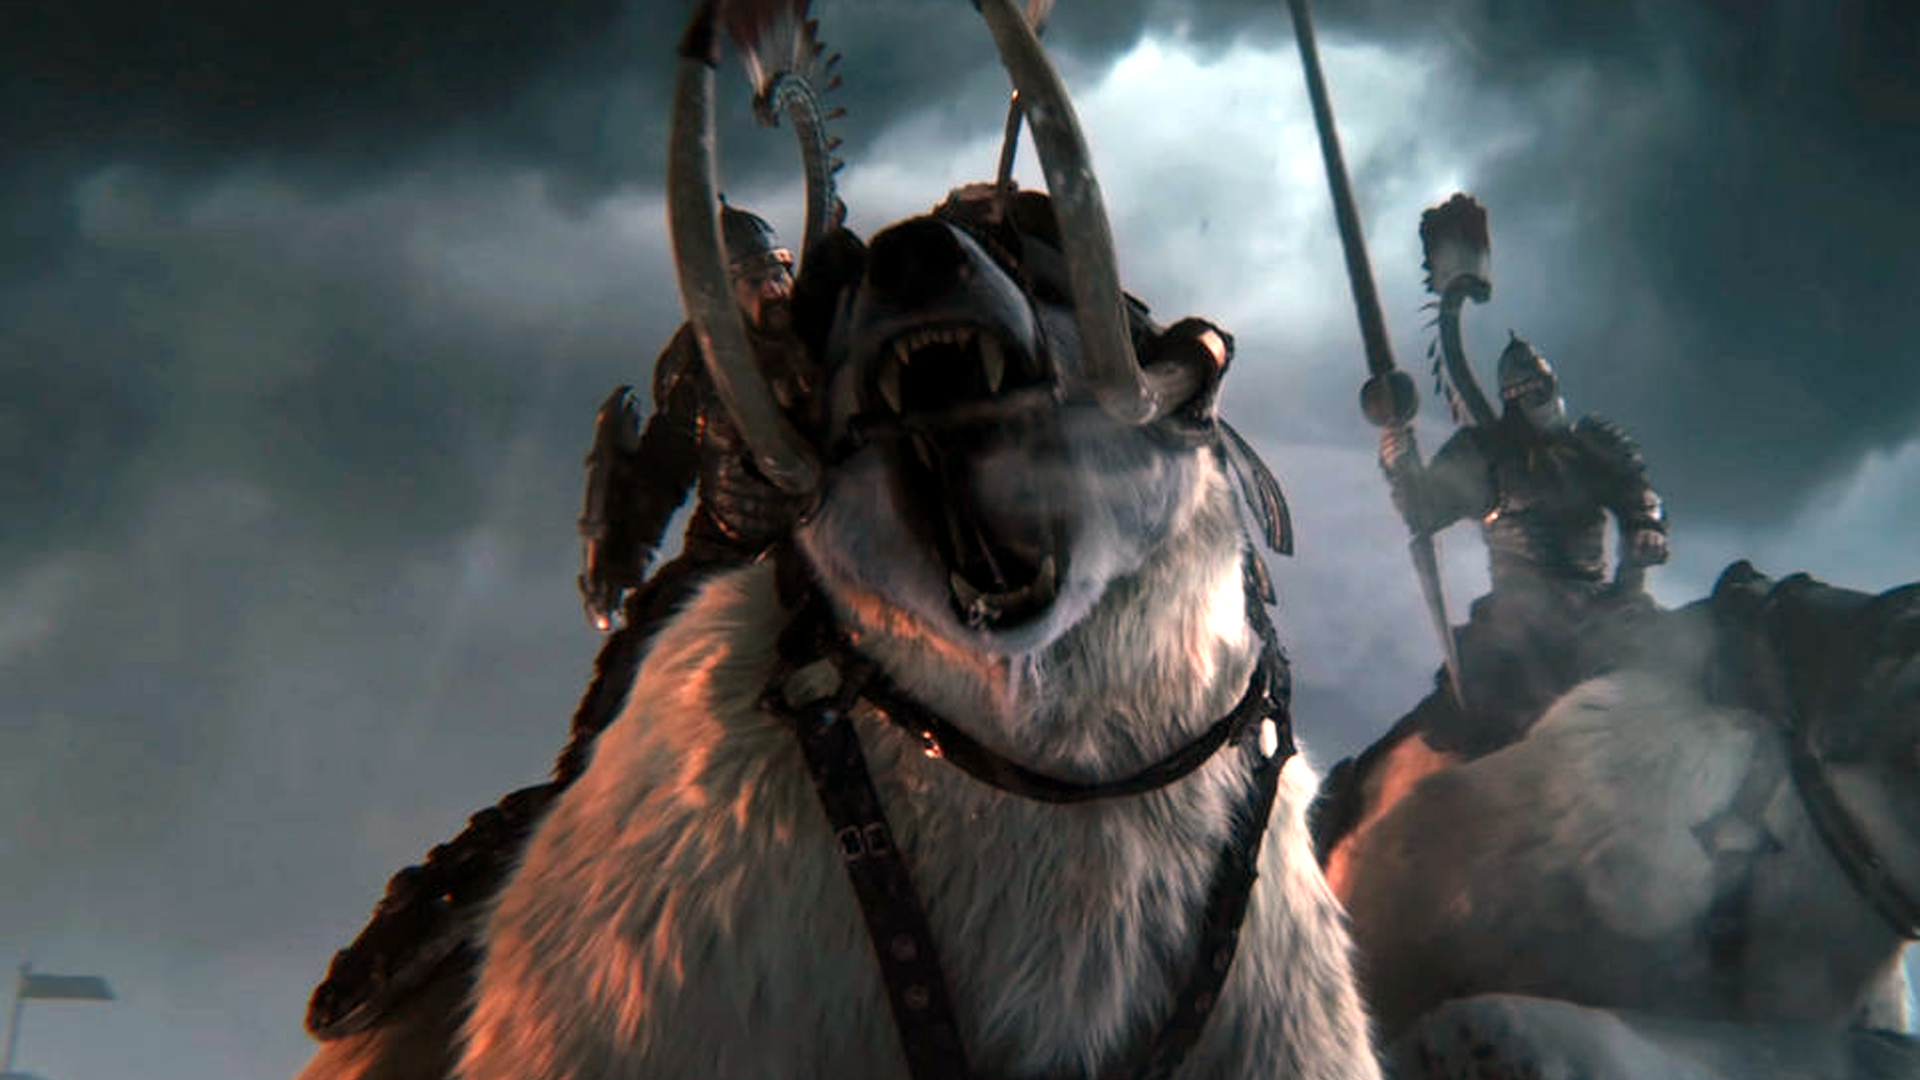 Total War: Warhammer 3 fans are concerned Kislev has too many bears